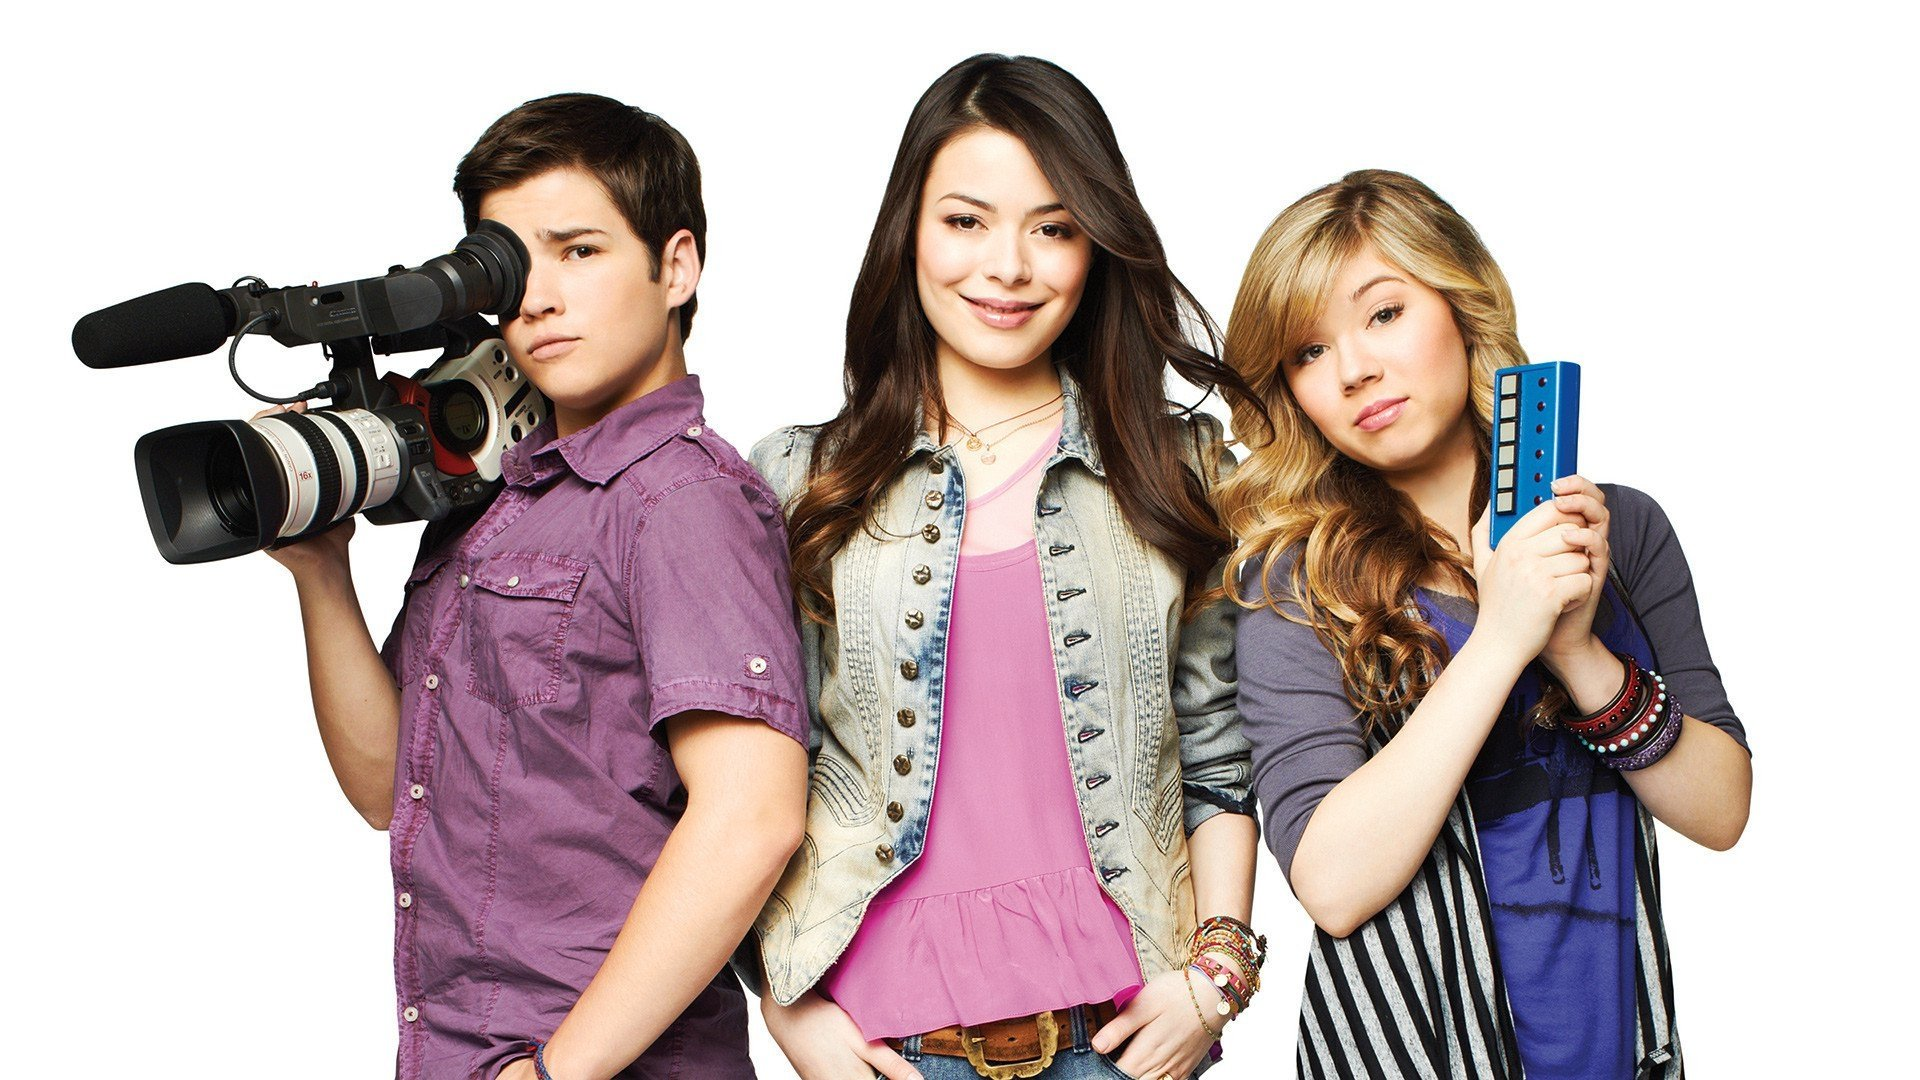 Icarly Hd Wallpapers